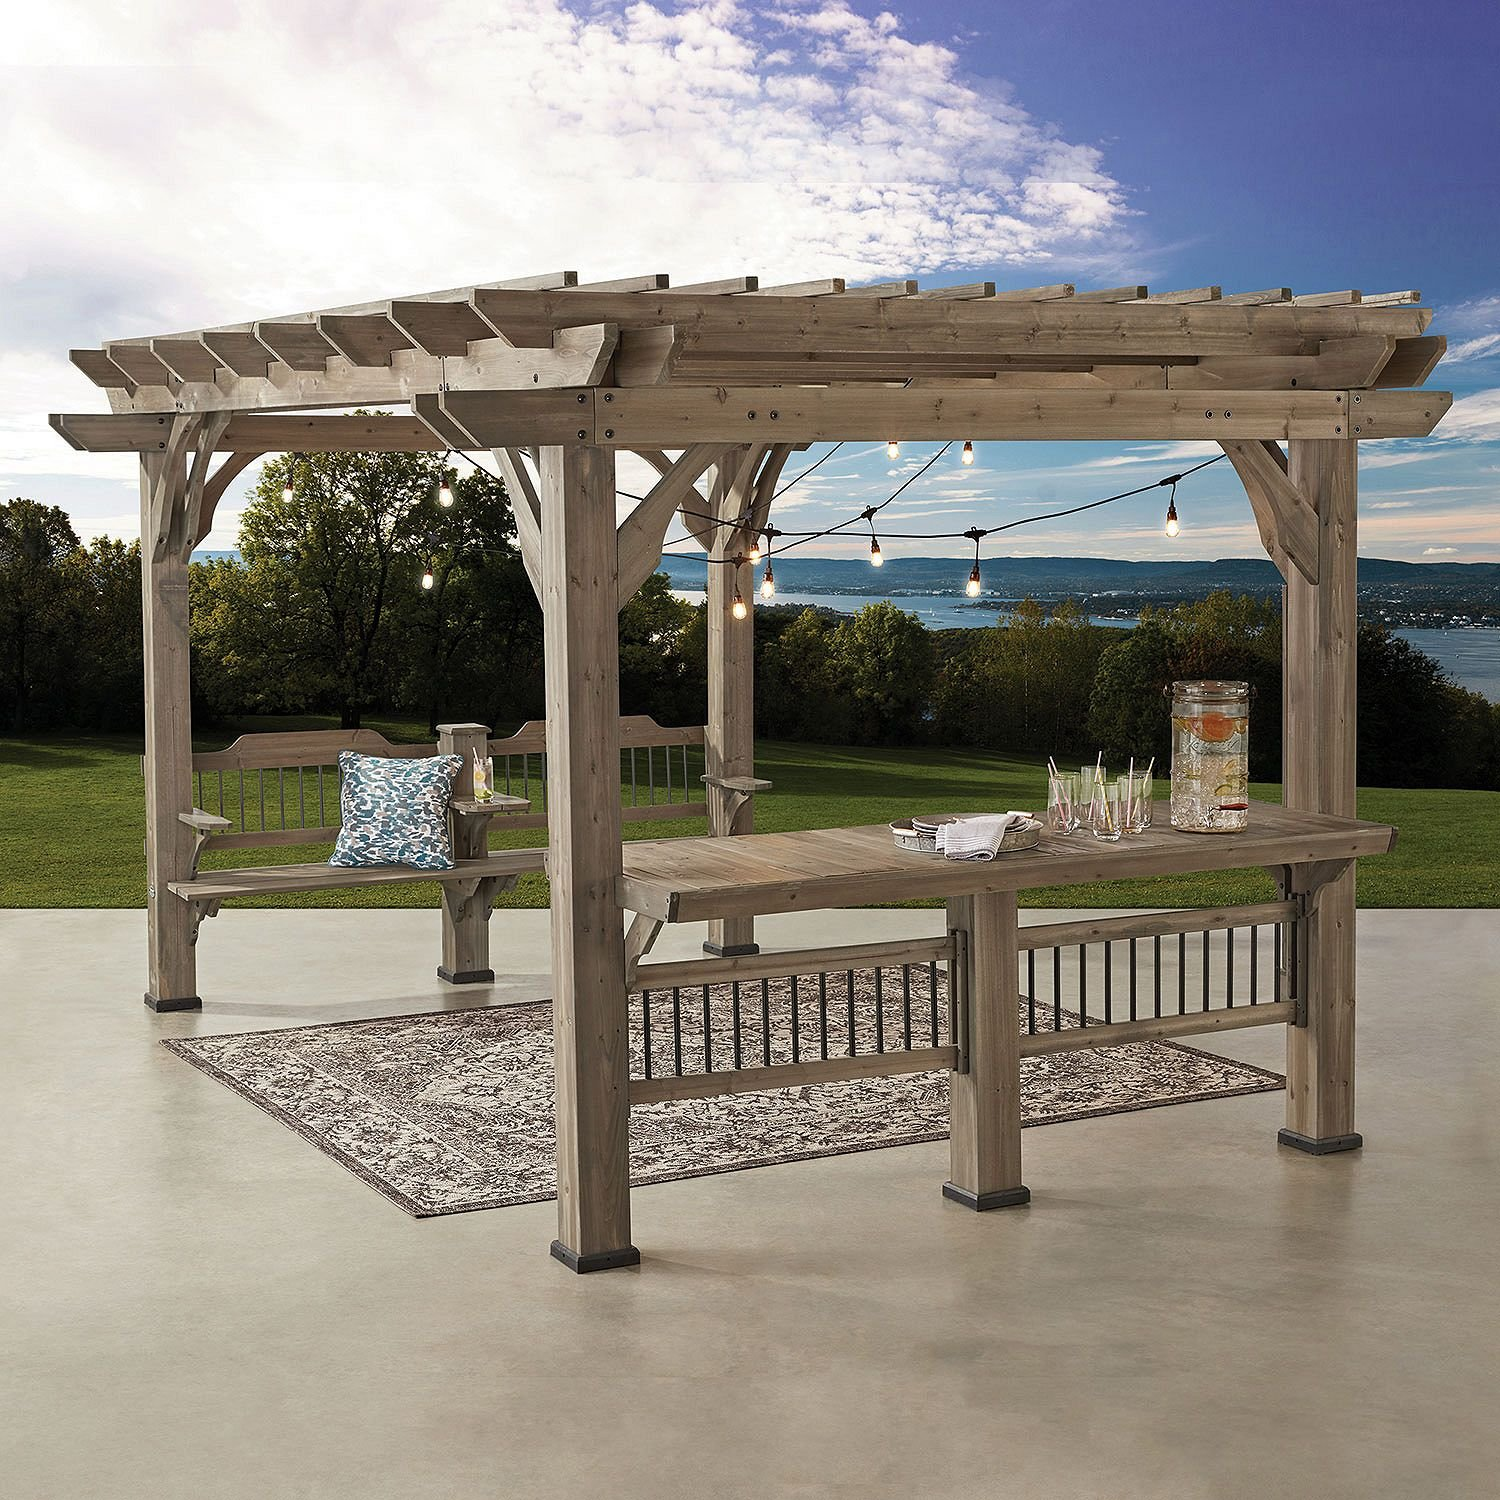 Large Wooden Outdoor Cedar Pergola with built in Benches and Bar 14FT x 10FT Kit. Has Electrical outlets for convenience. Complete Entertaining Center.